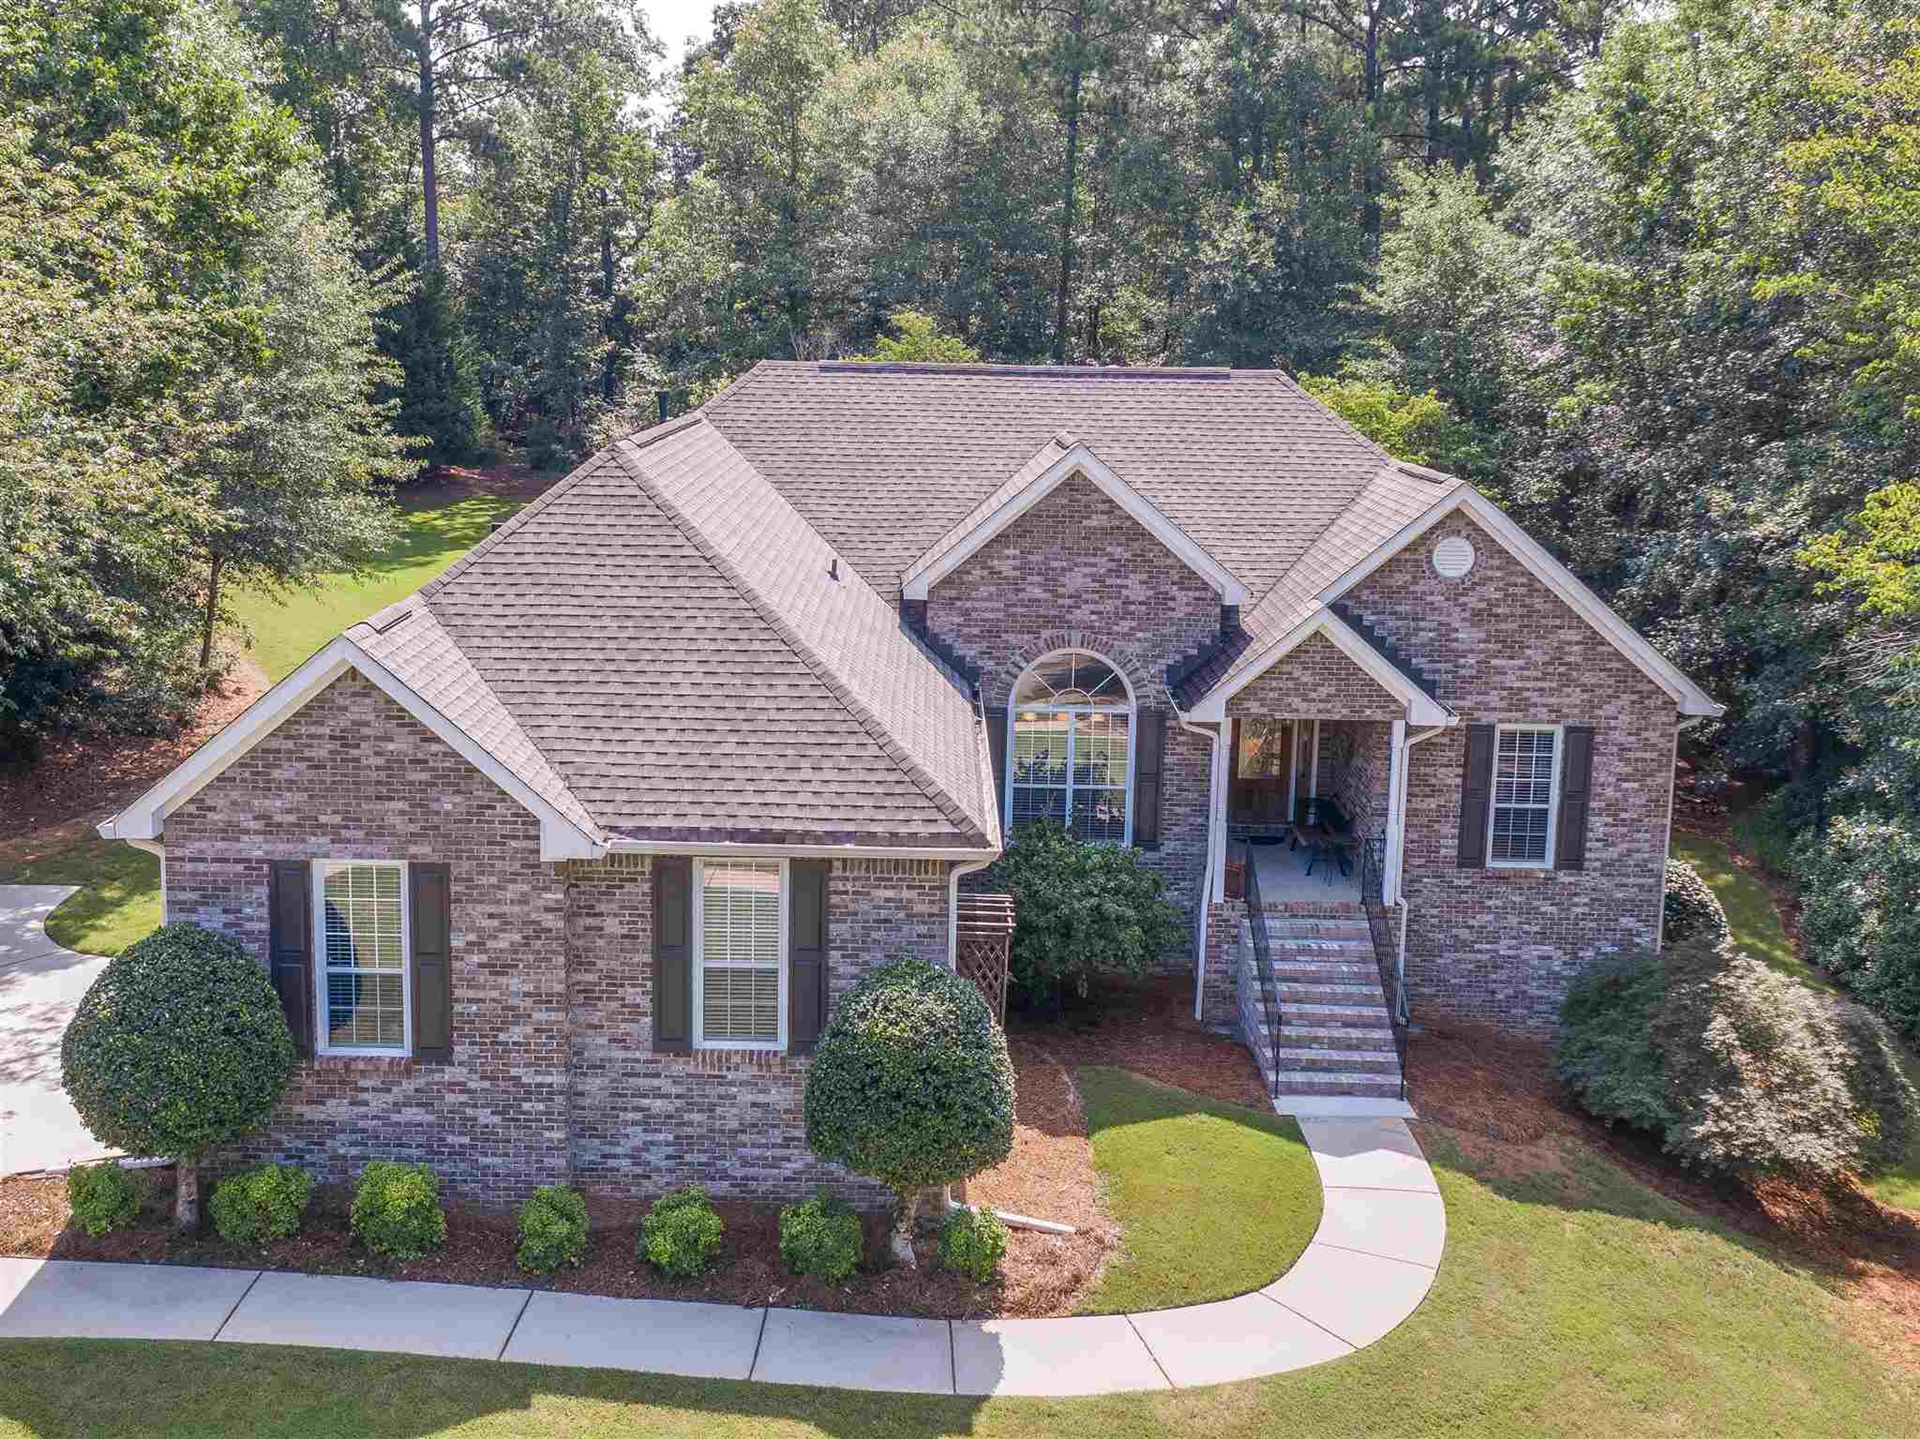 1131 River Green Ct, McDonough, GA 30252 - #: 8838963